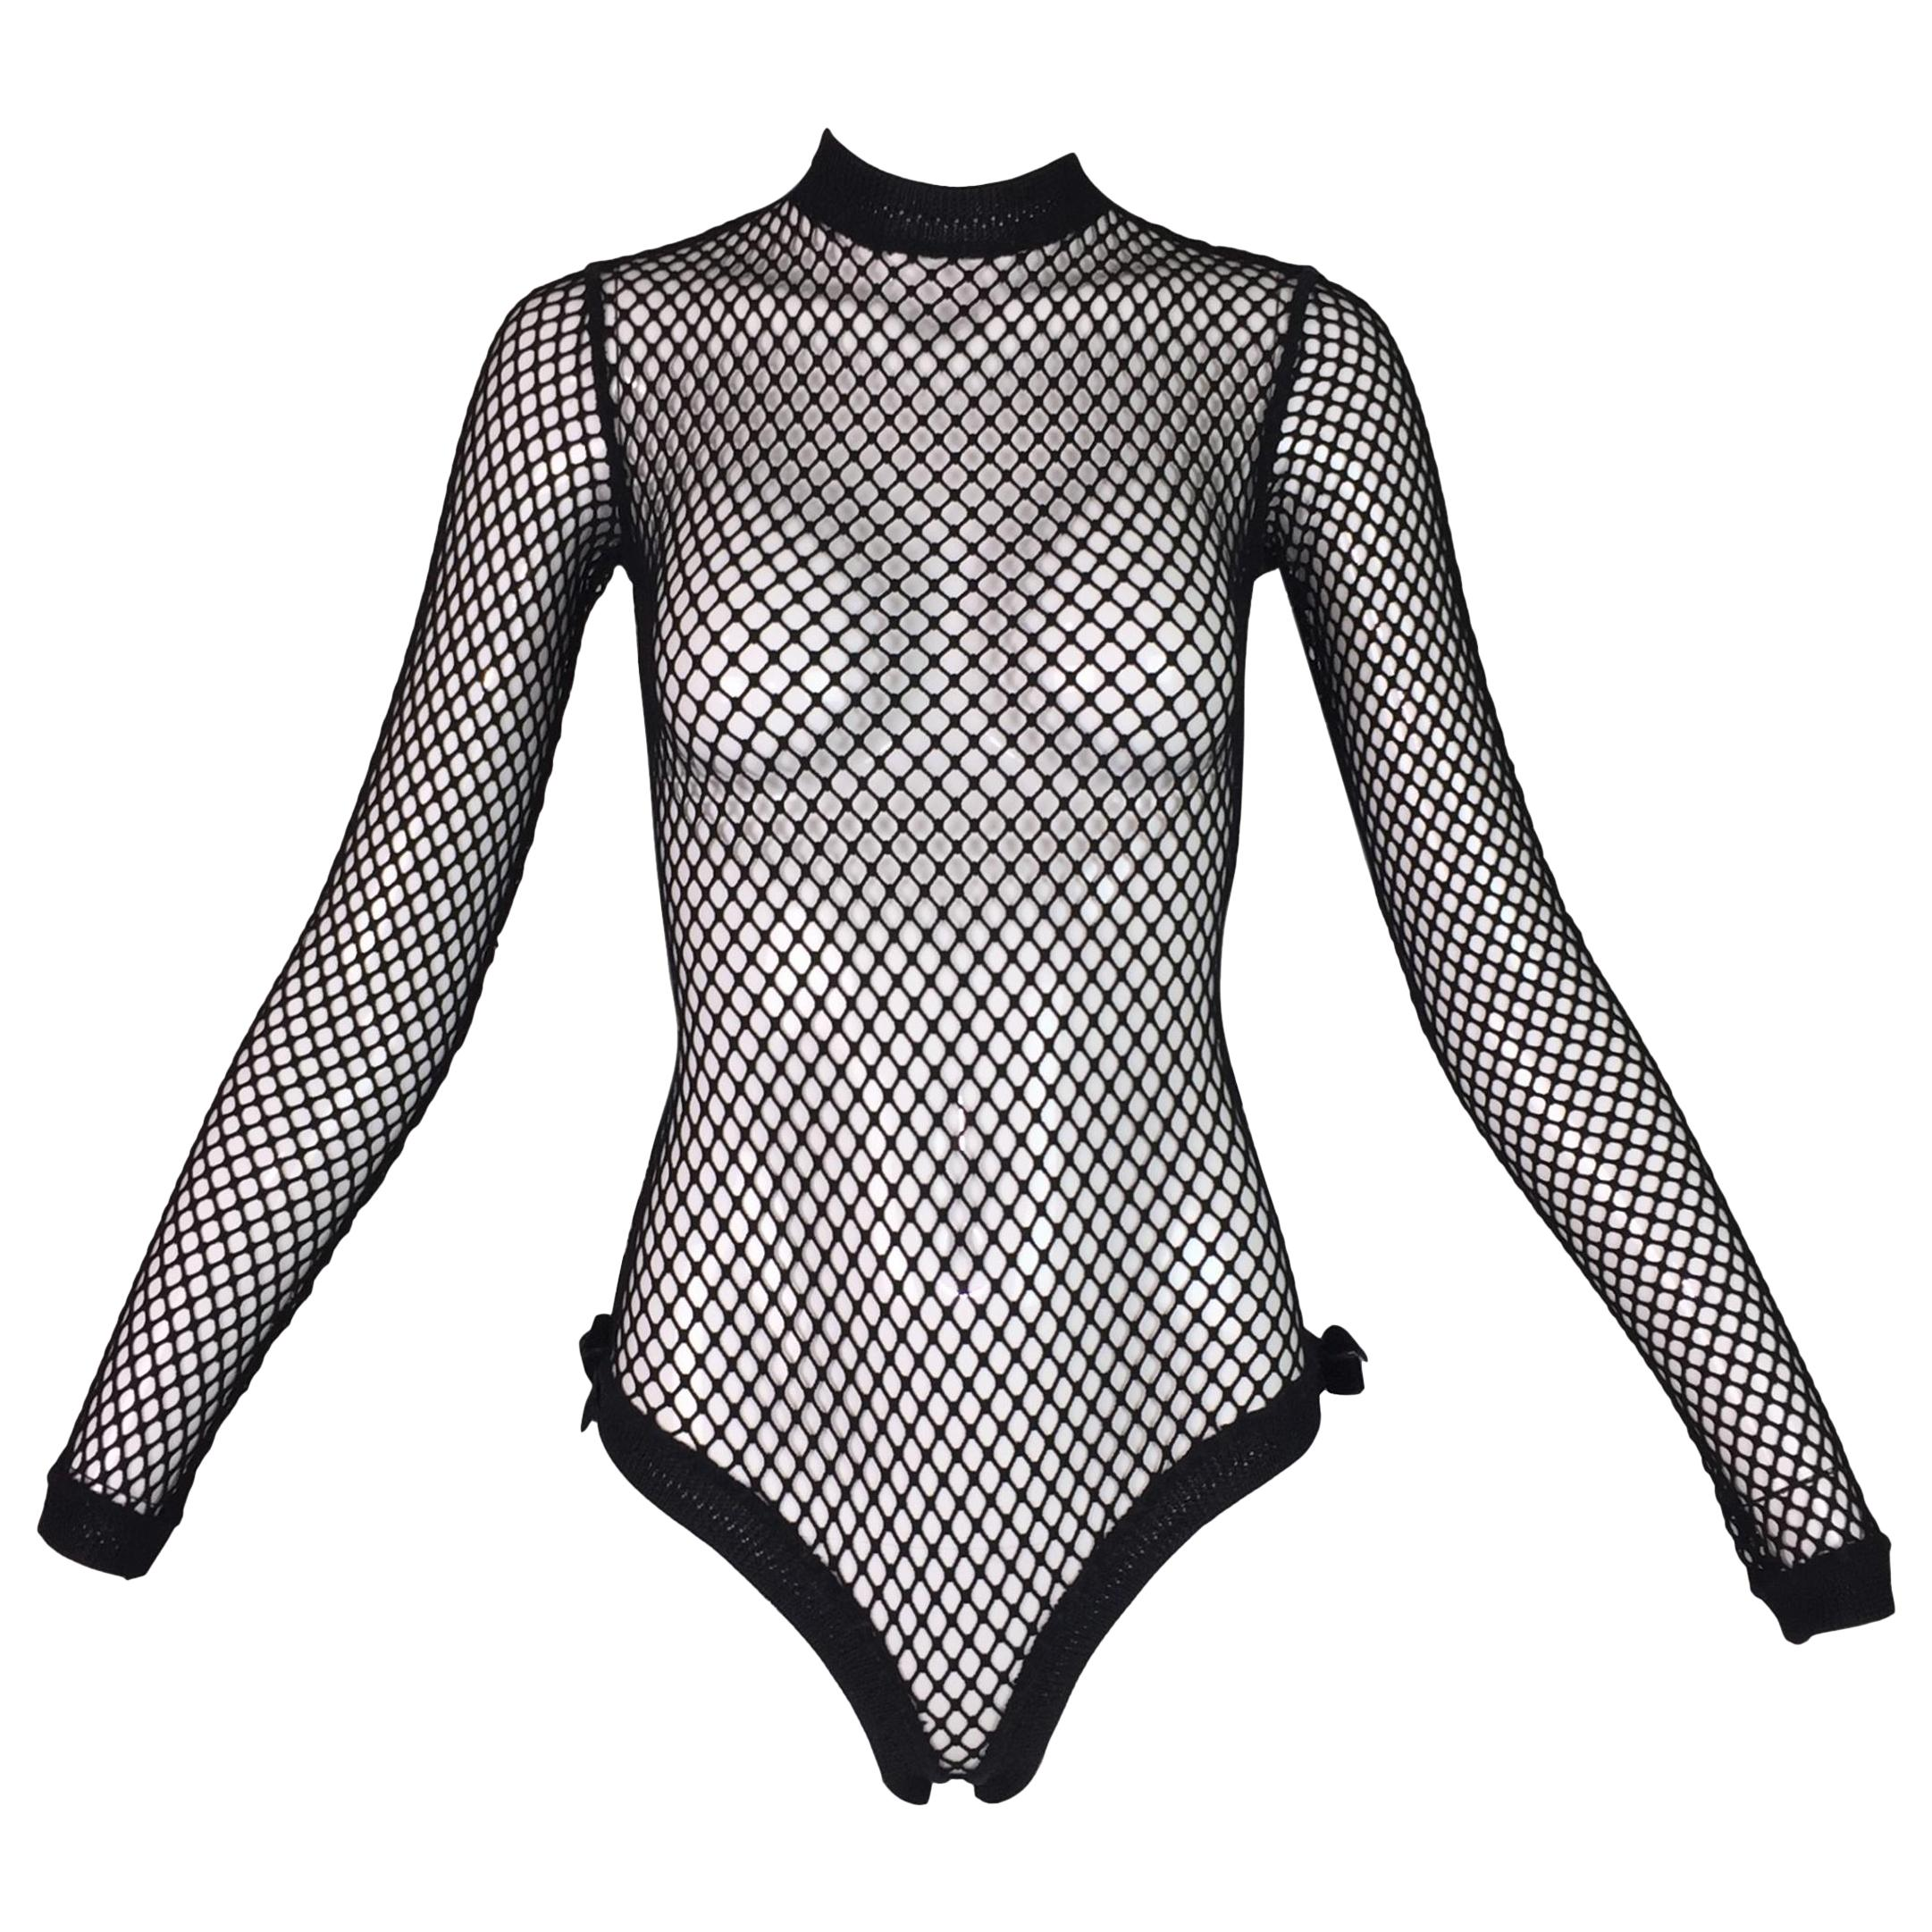 1993 Jean Paul Gaultier Pin-Up Black Fishnet Mesh Bow Bodysuit Top